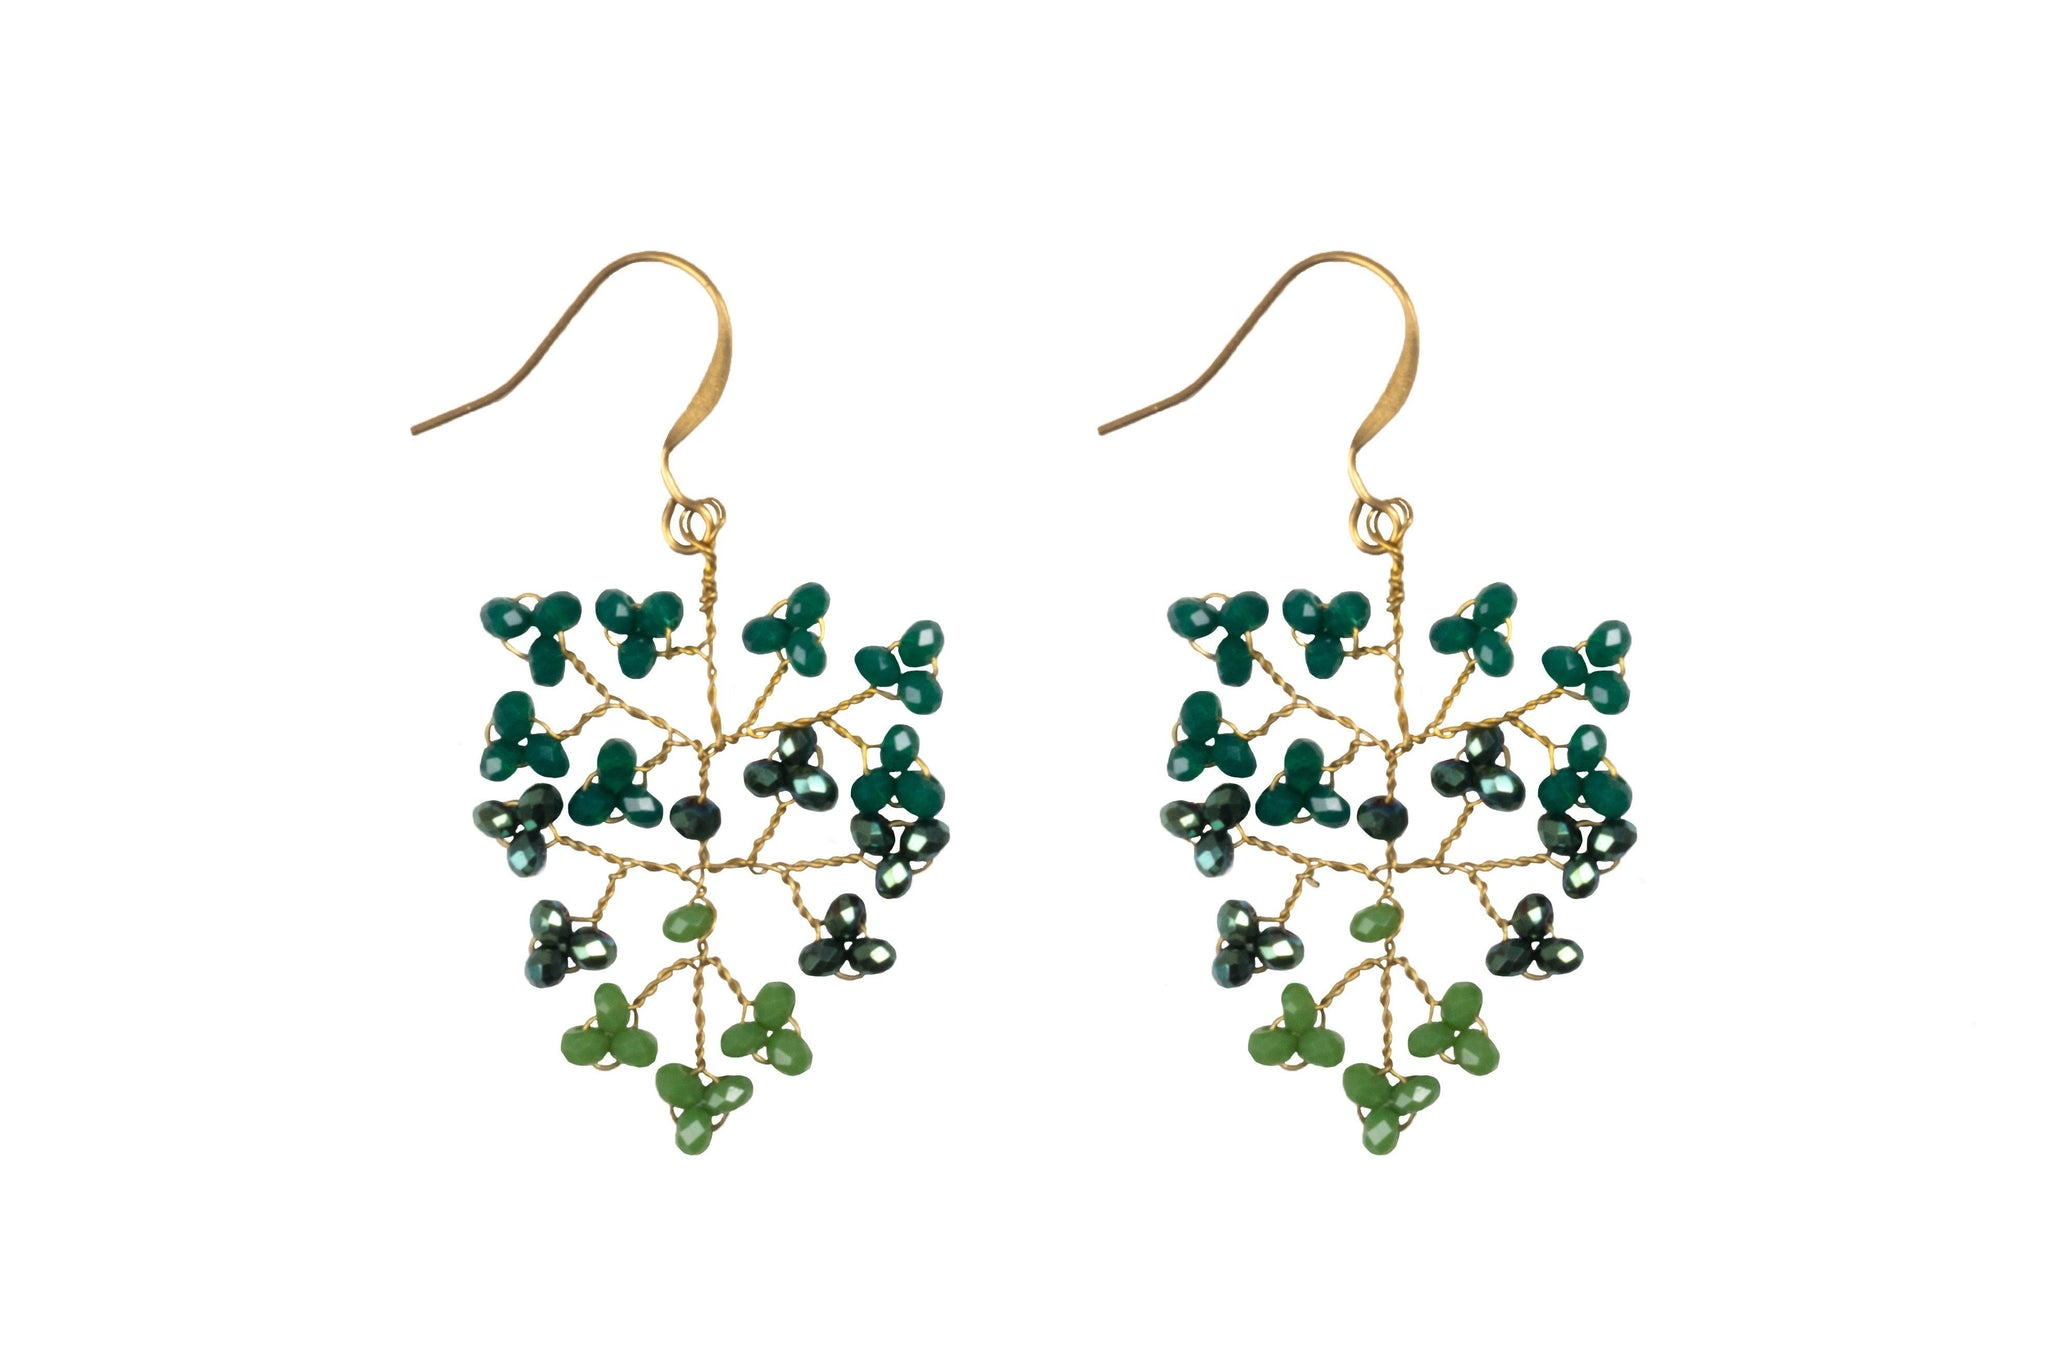 Handmade Earring Crystal Brass Shrub Shape - CCCollections